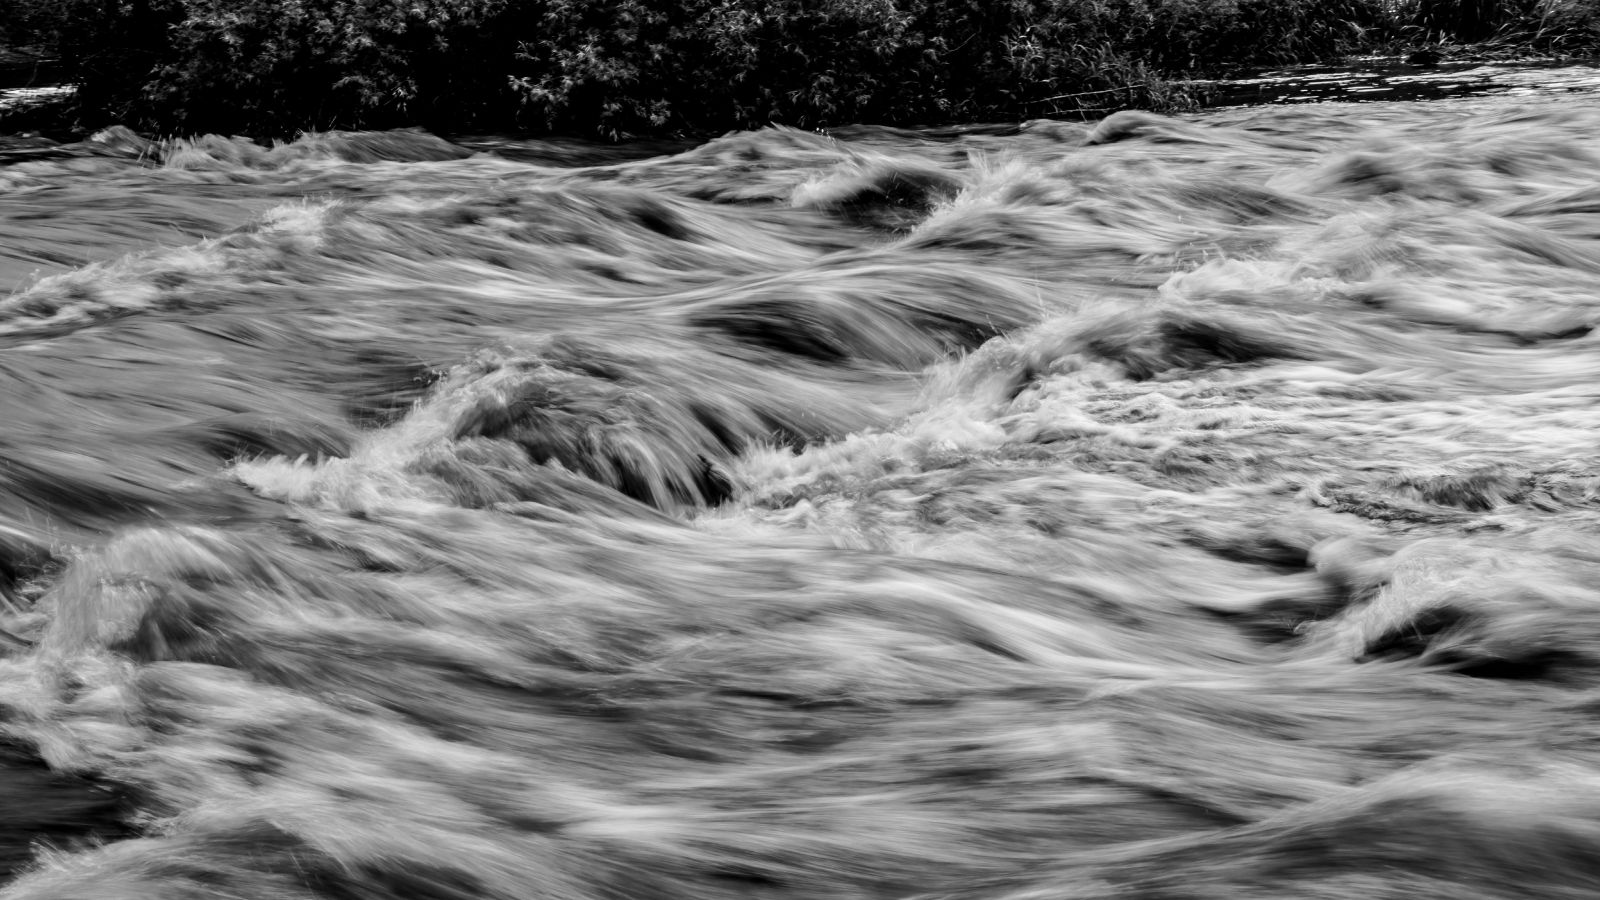 Grayscale photo of water waves